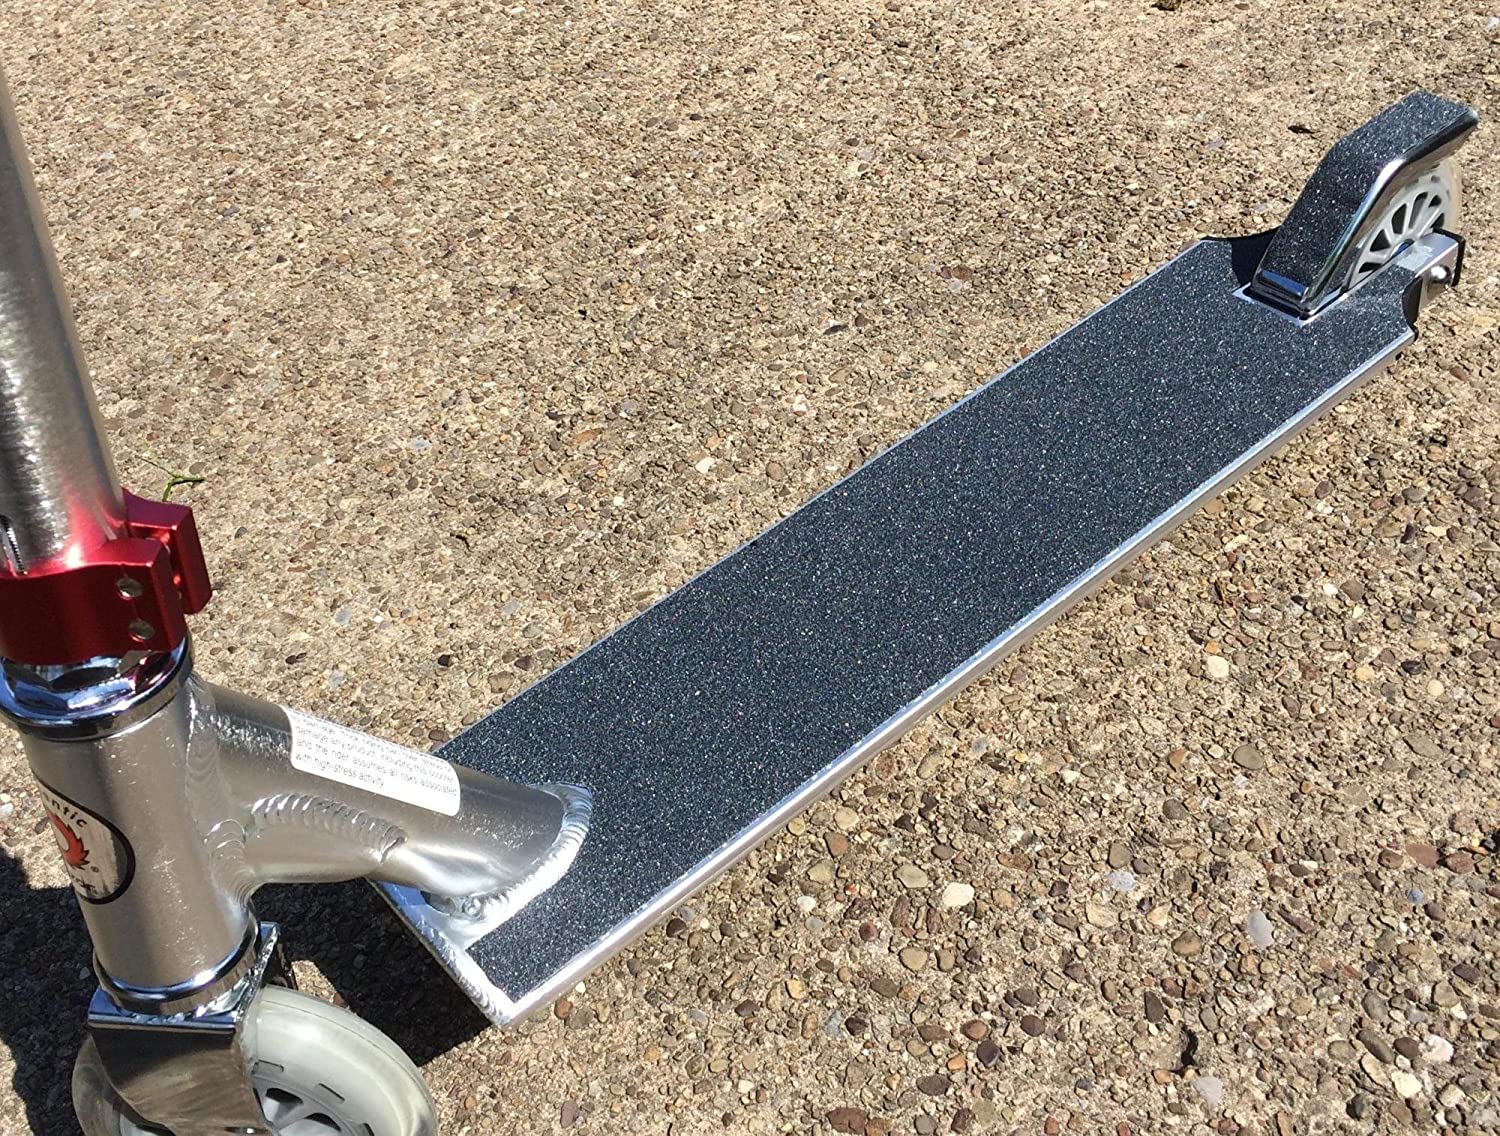 Phoenix Awesome grip 4.5 x 20 Fits most kick Red Cat Brand Scooter Grip Tape Black gas Micro 20-0010 Pro Grade Grip Tape made for scooters Guaranteed BUBBLE FREE etc Razor electric Lucky